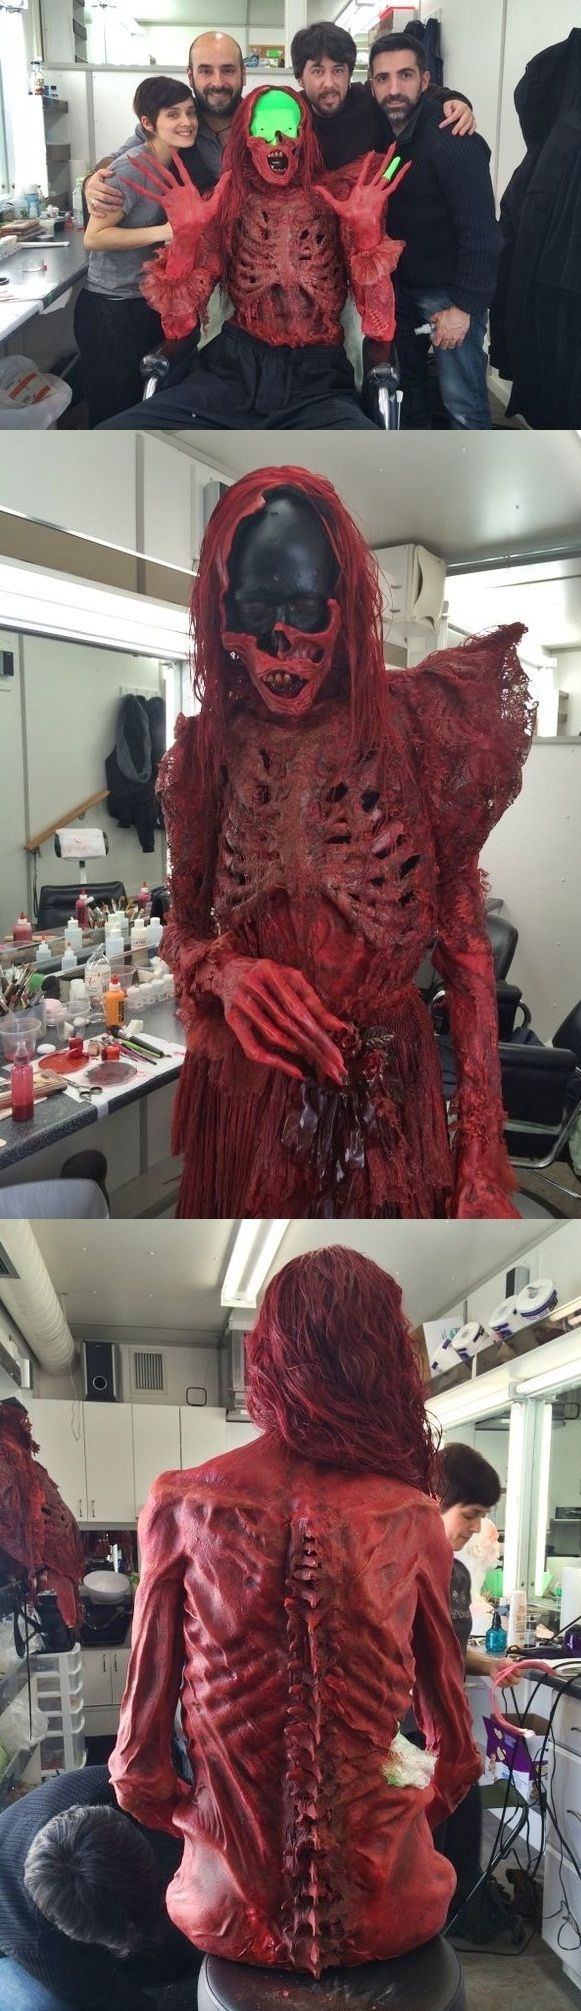 Guillermo del Toro's Behind the Scenes Pics from 'Crimson Peak'